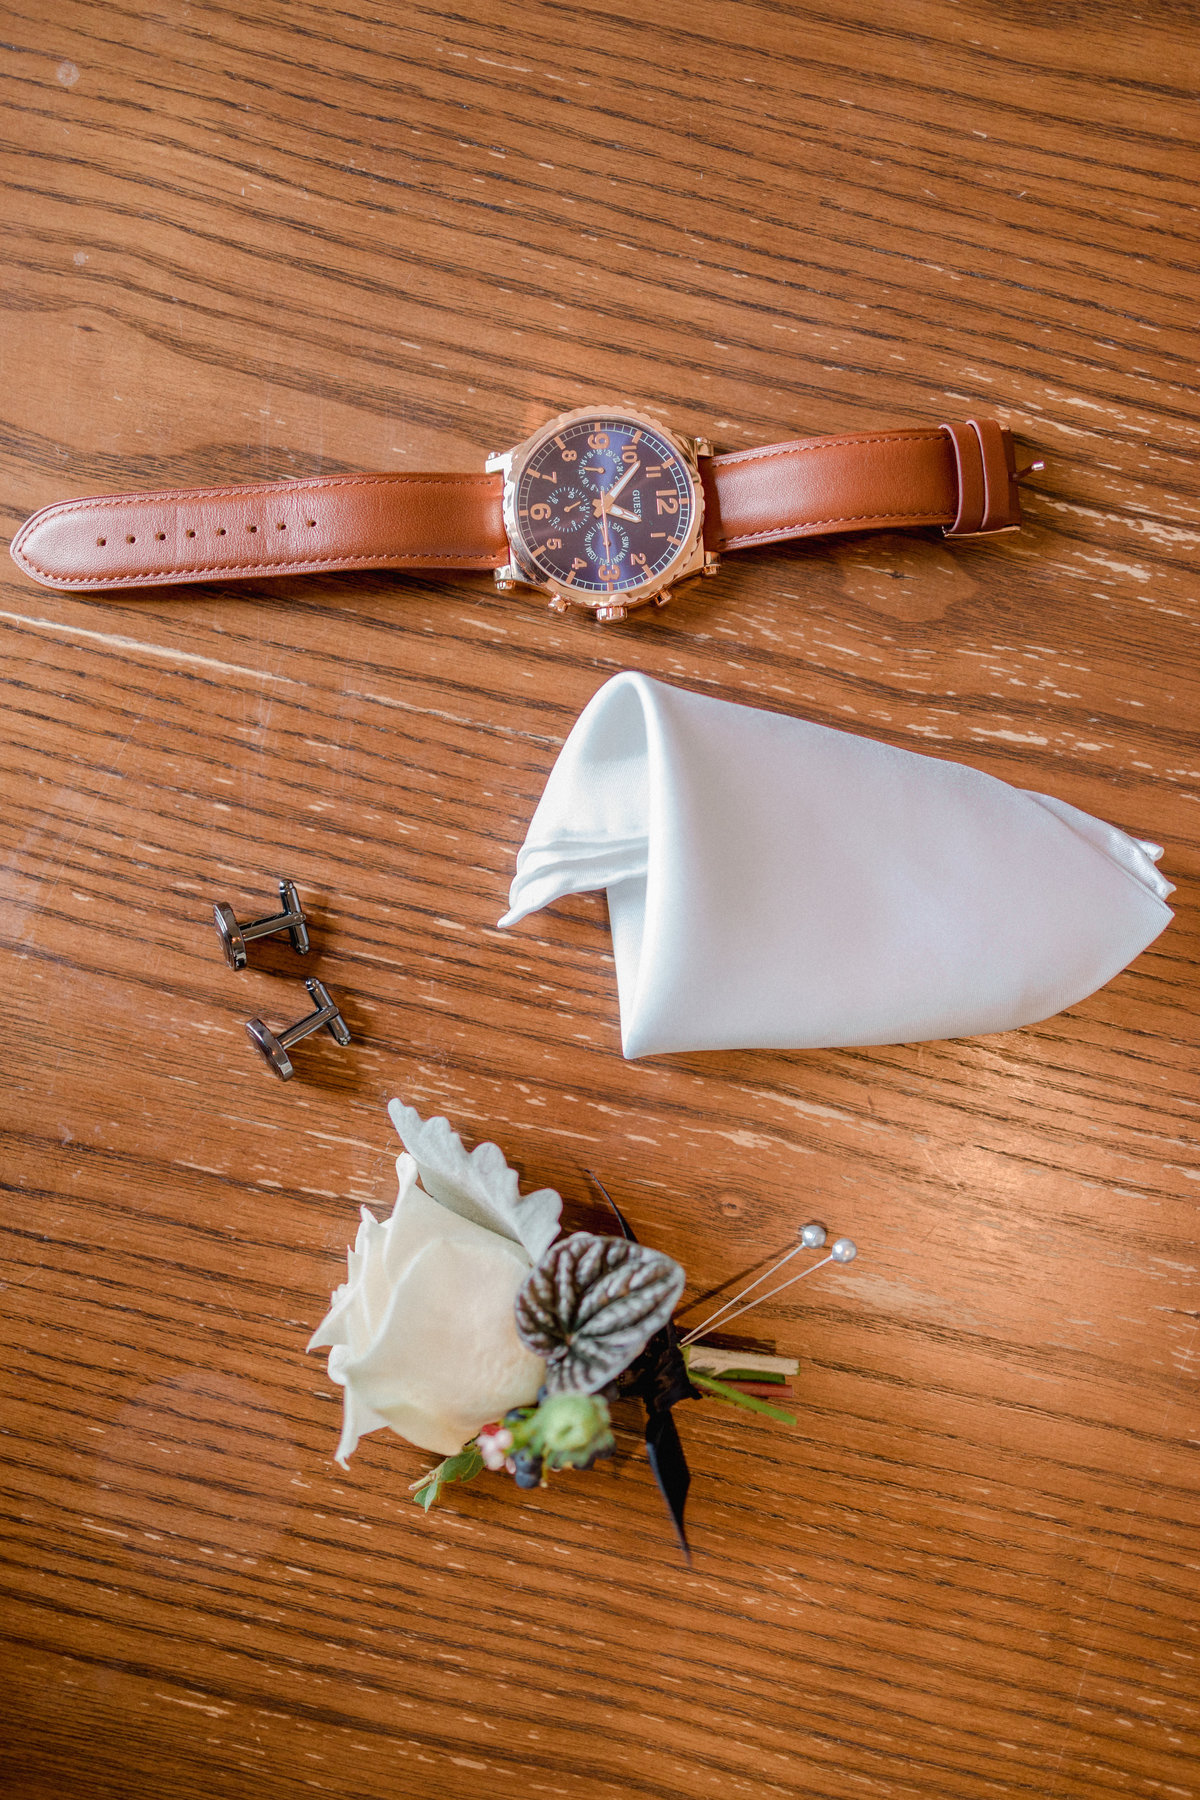 brown watch, silk white hankerchief and cufflinks with rose on wooden table